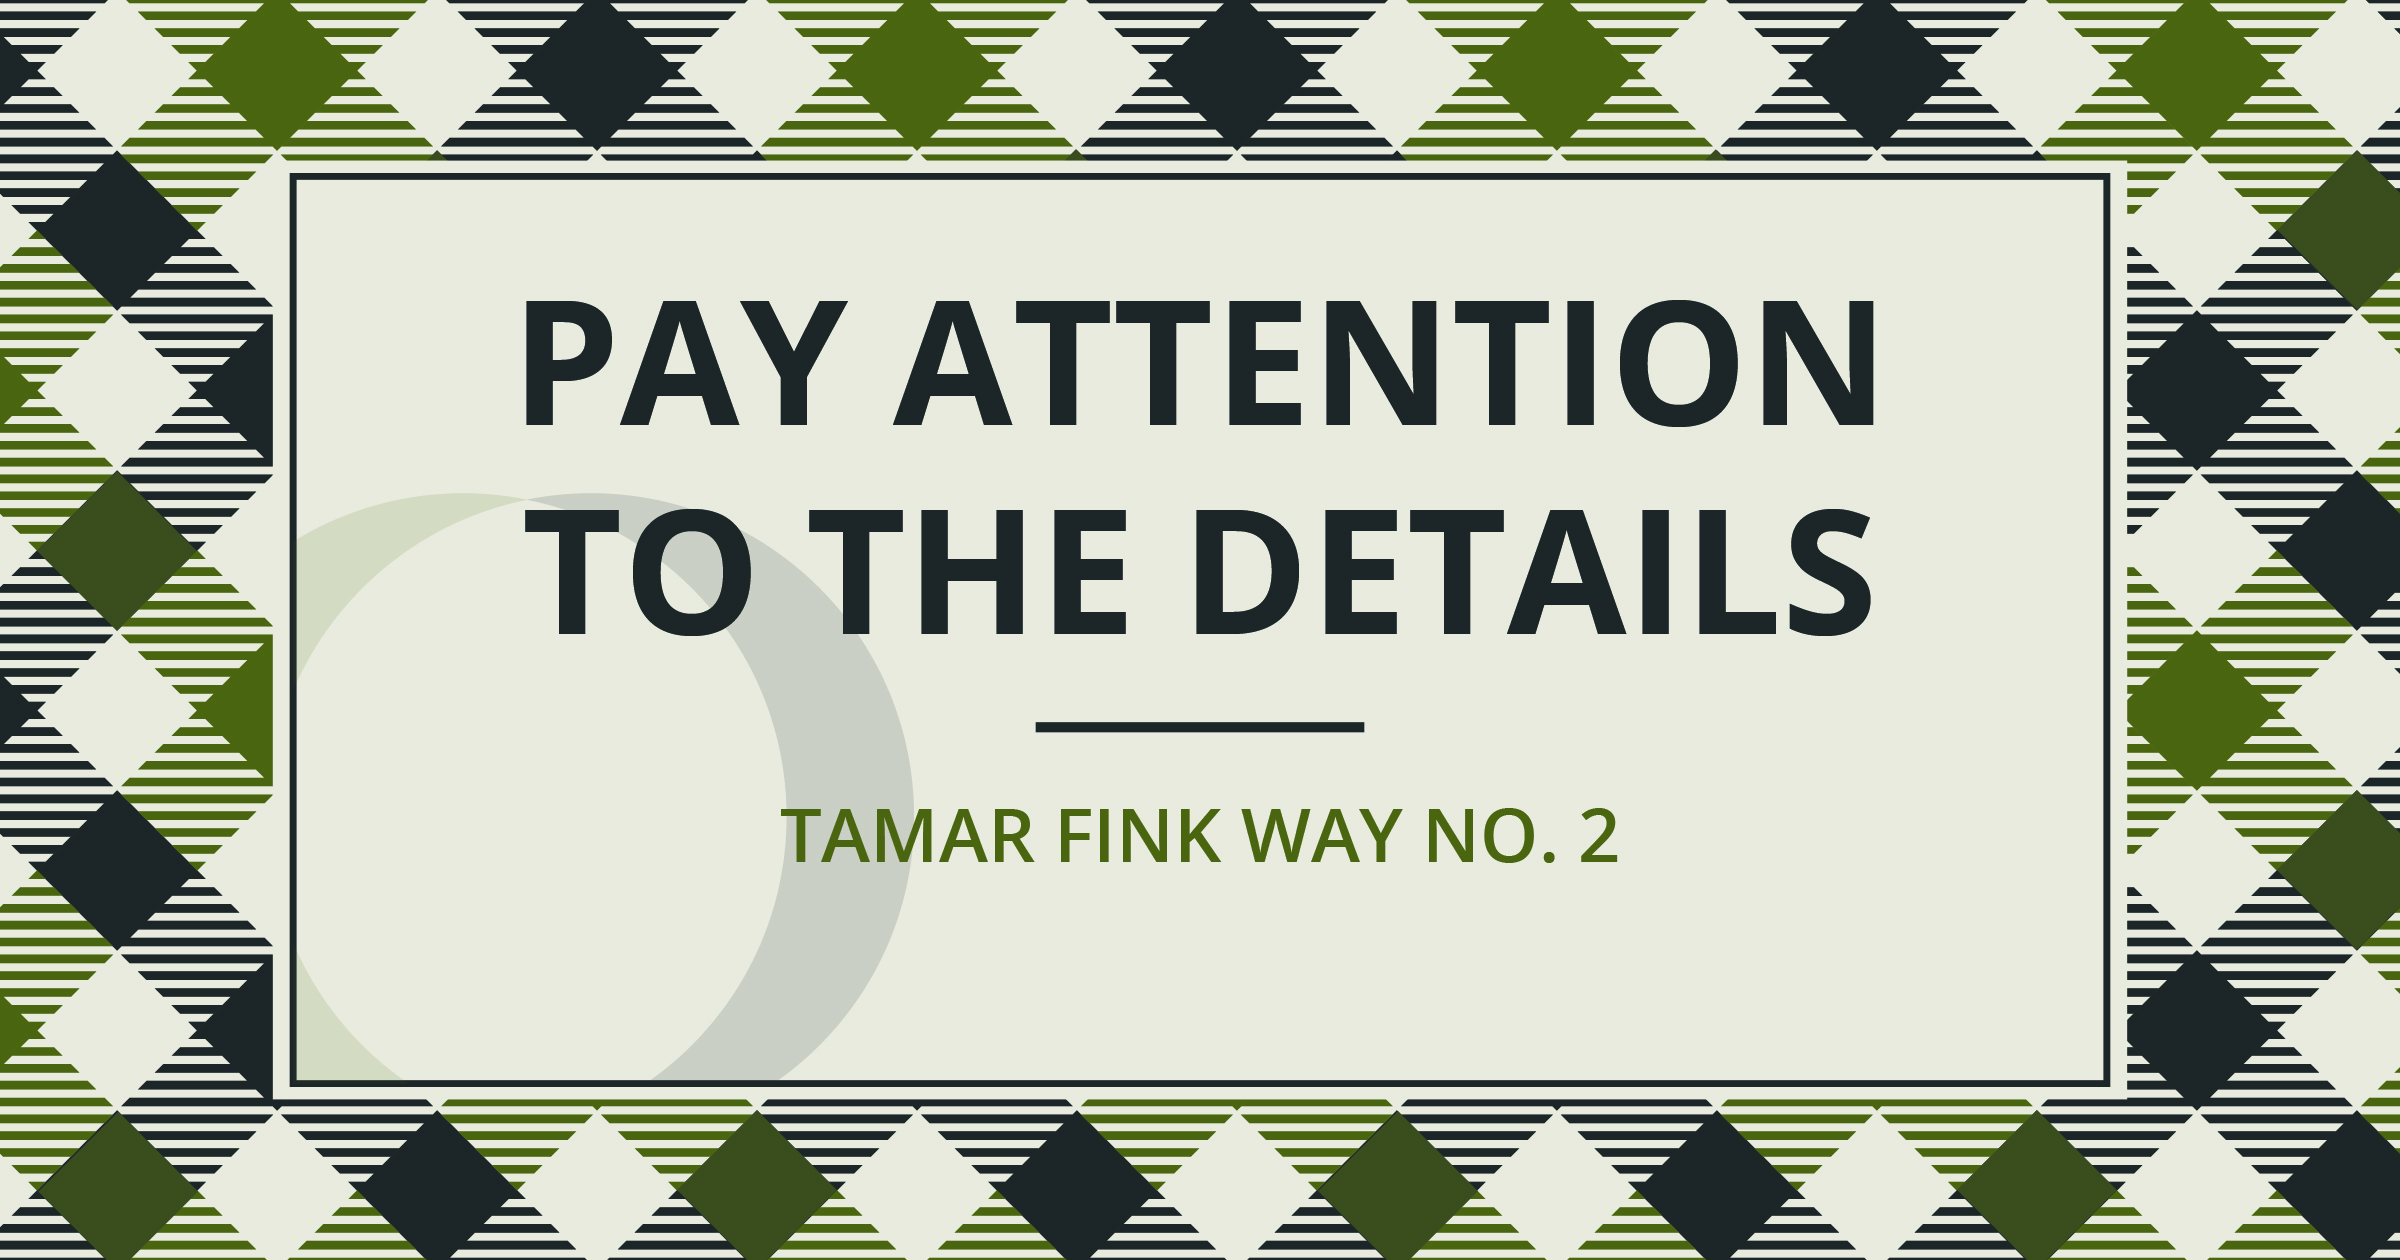 The Tamar Fink Way - #2